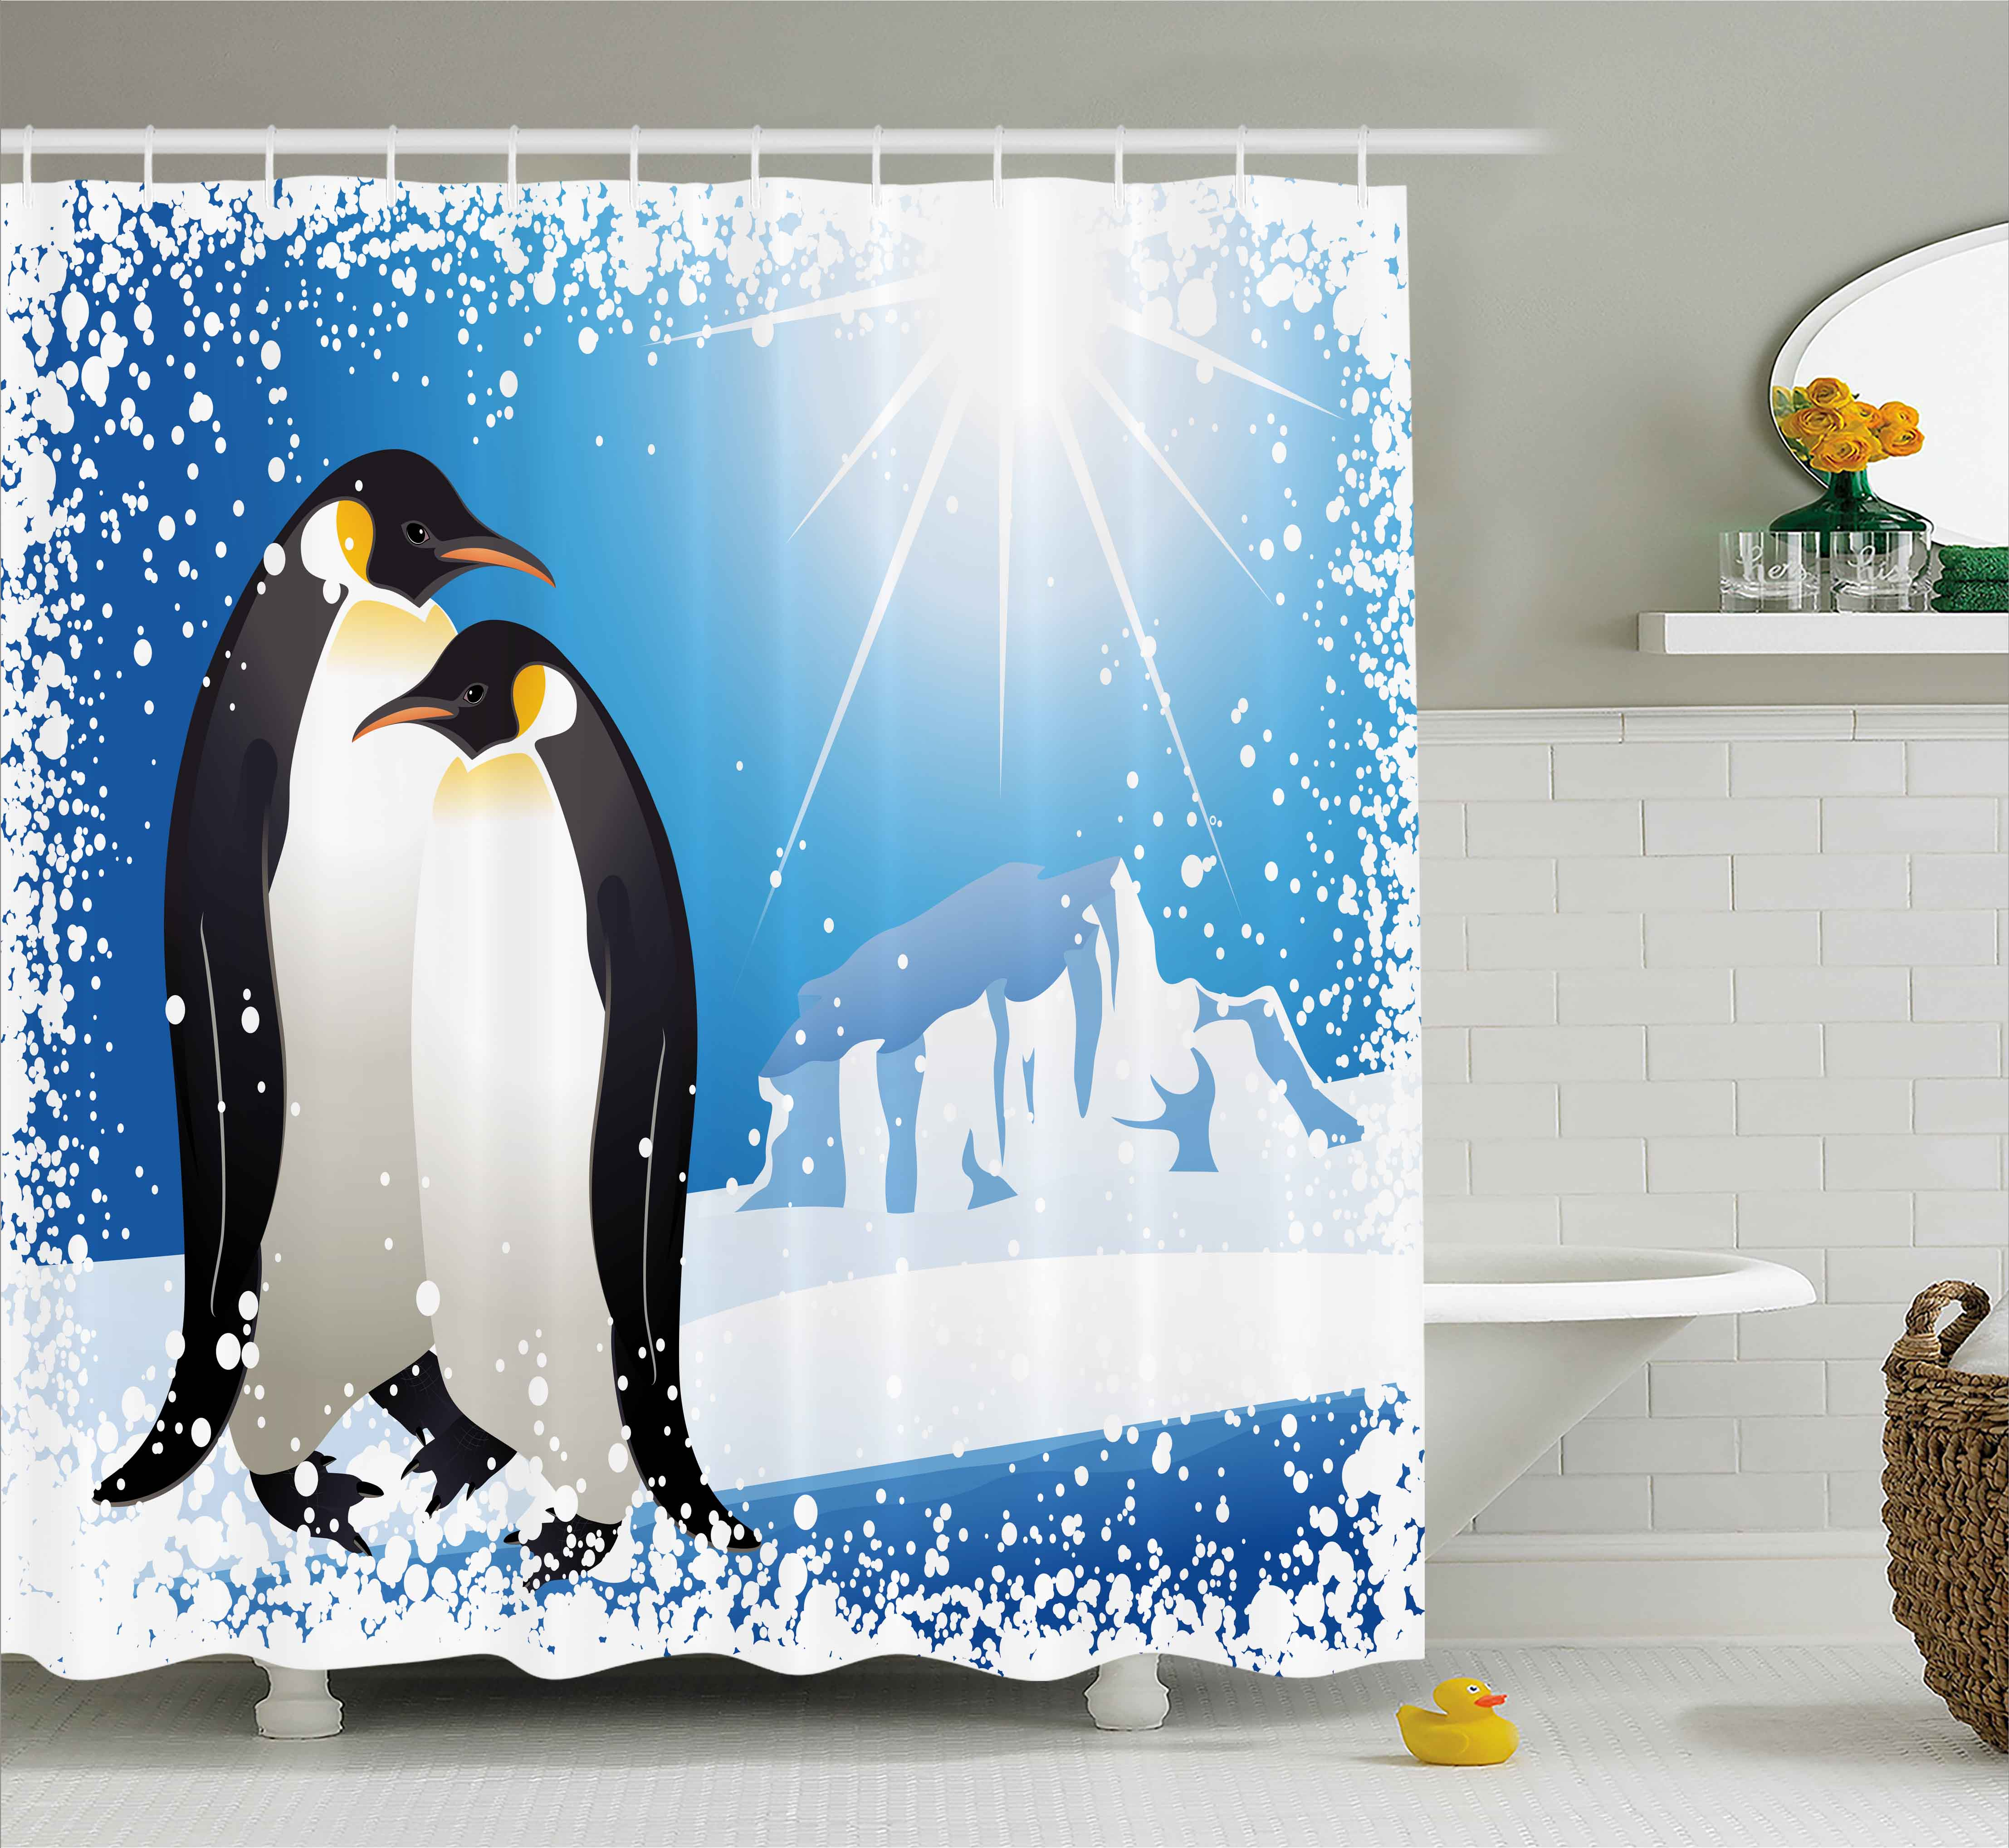 Winter Shower Curtain, Cute Penguins On Iceland At Arctic Snowy Frozen  Climate Kids Illustration,